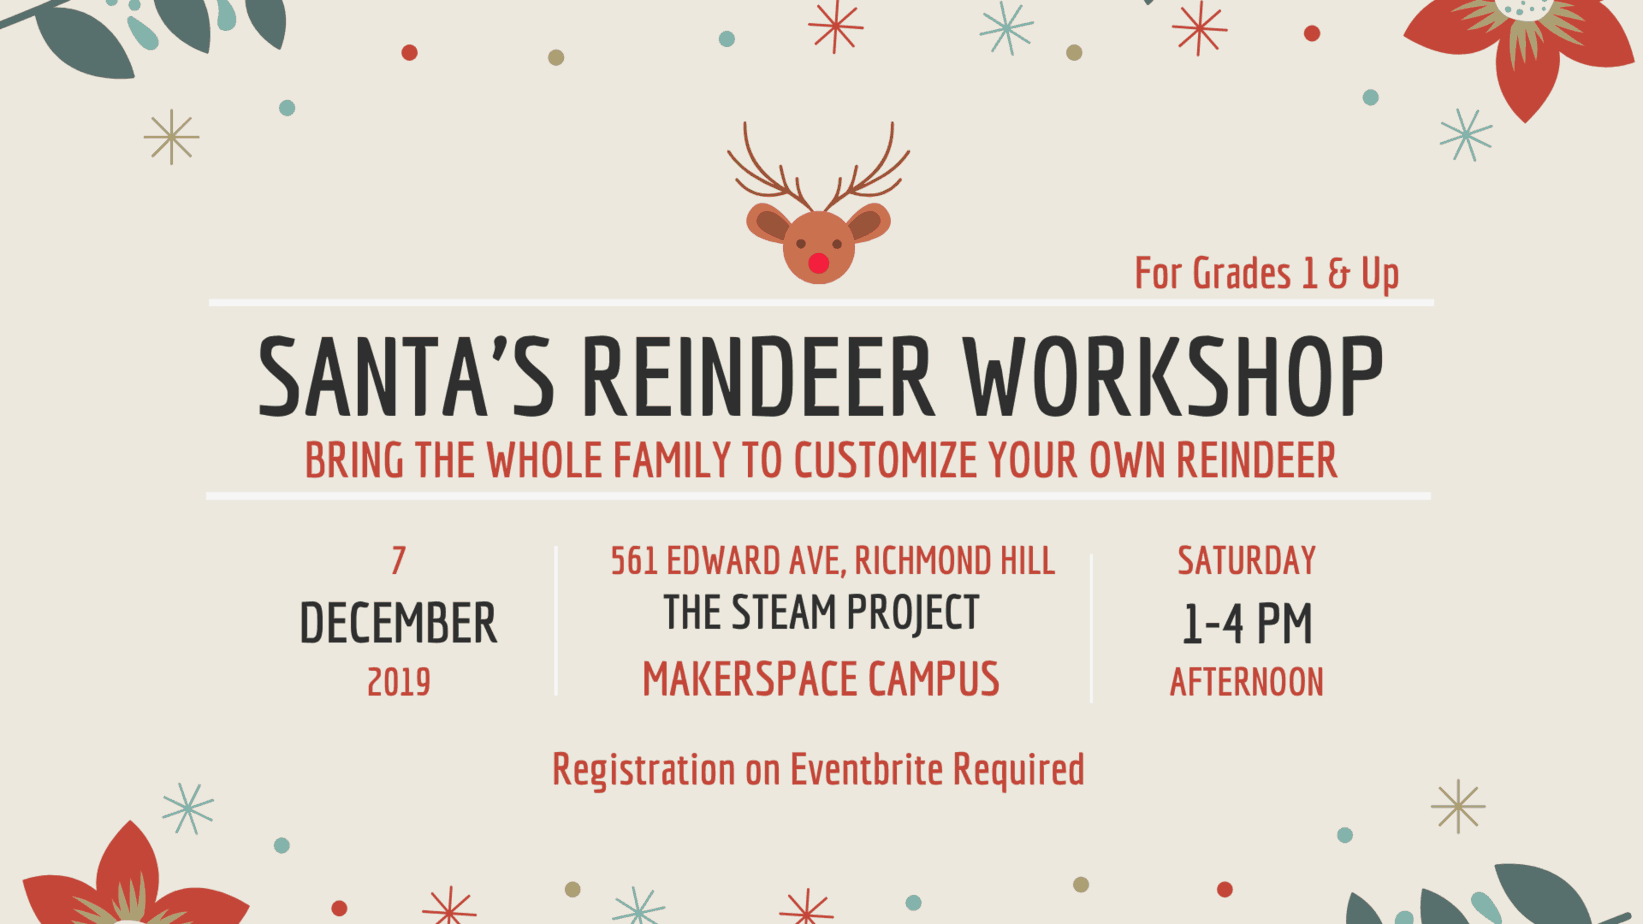 Santa's Reindeer Workshop!